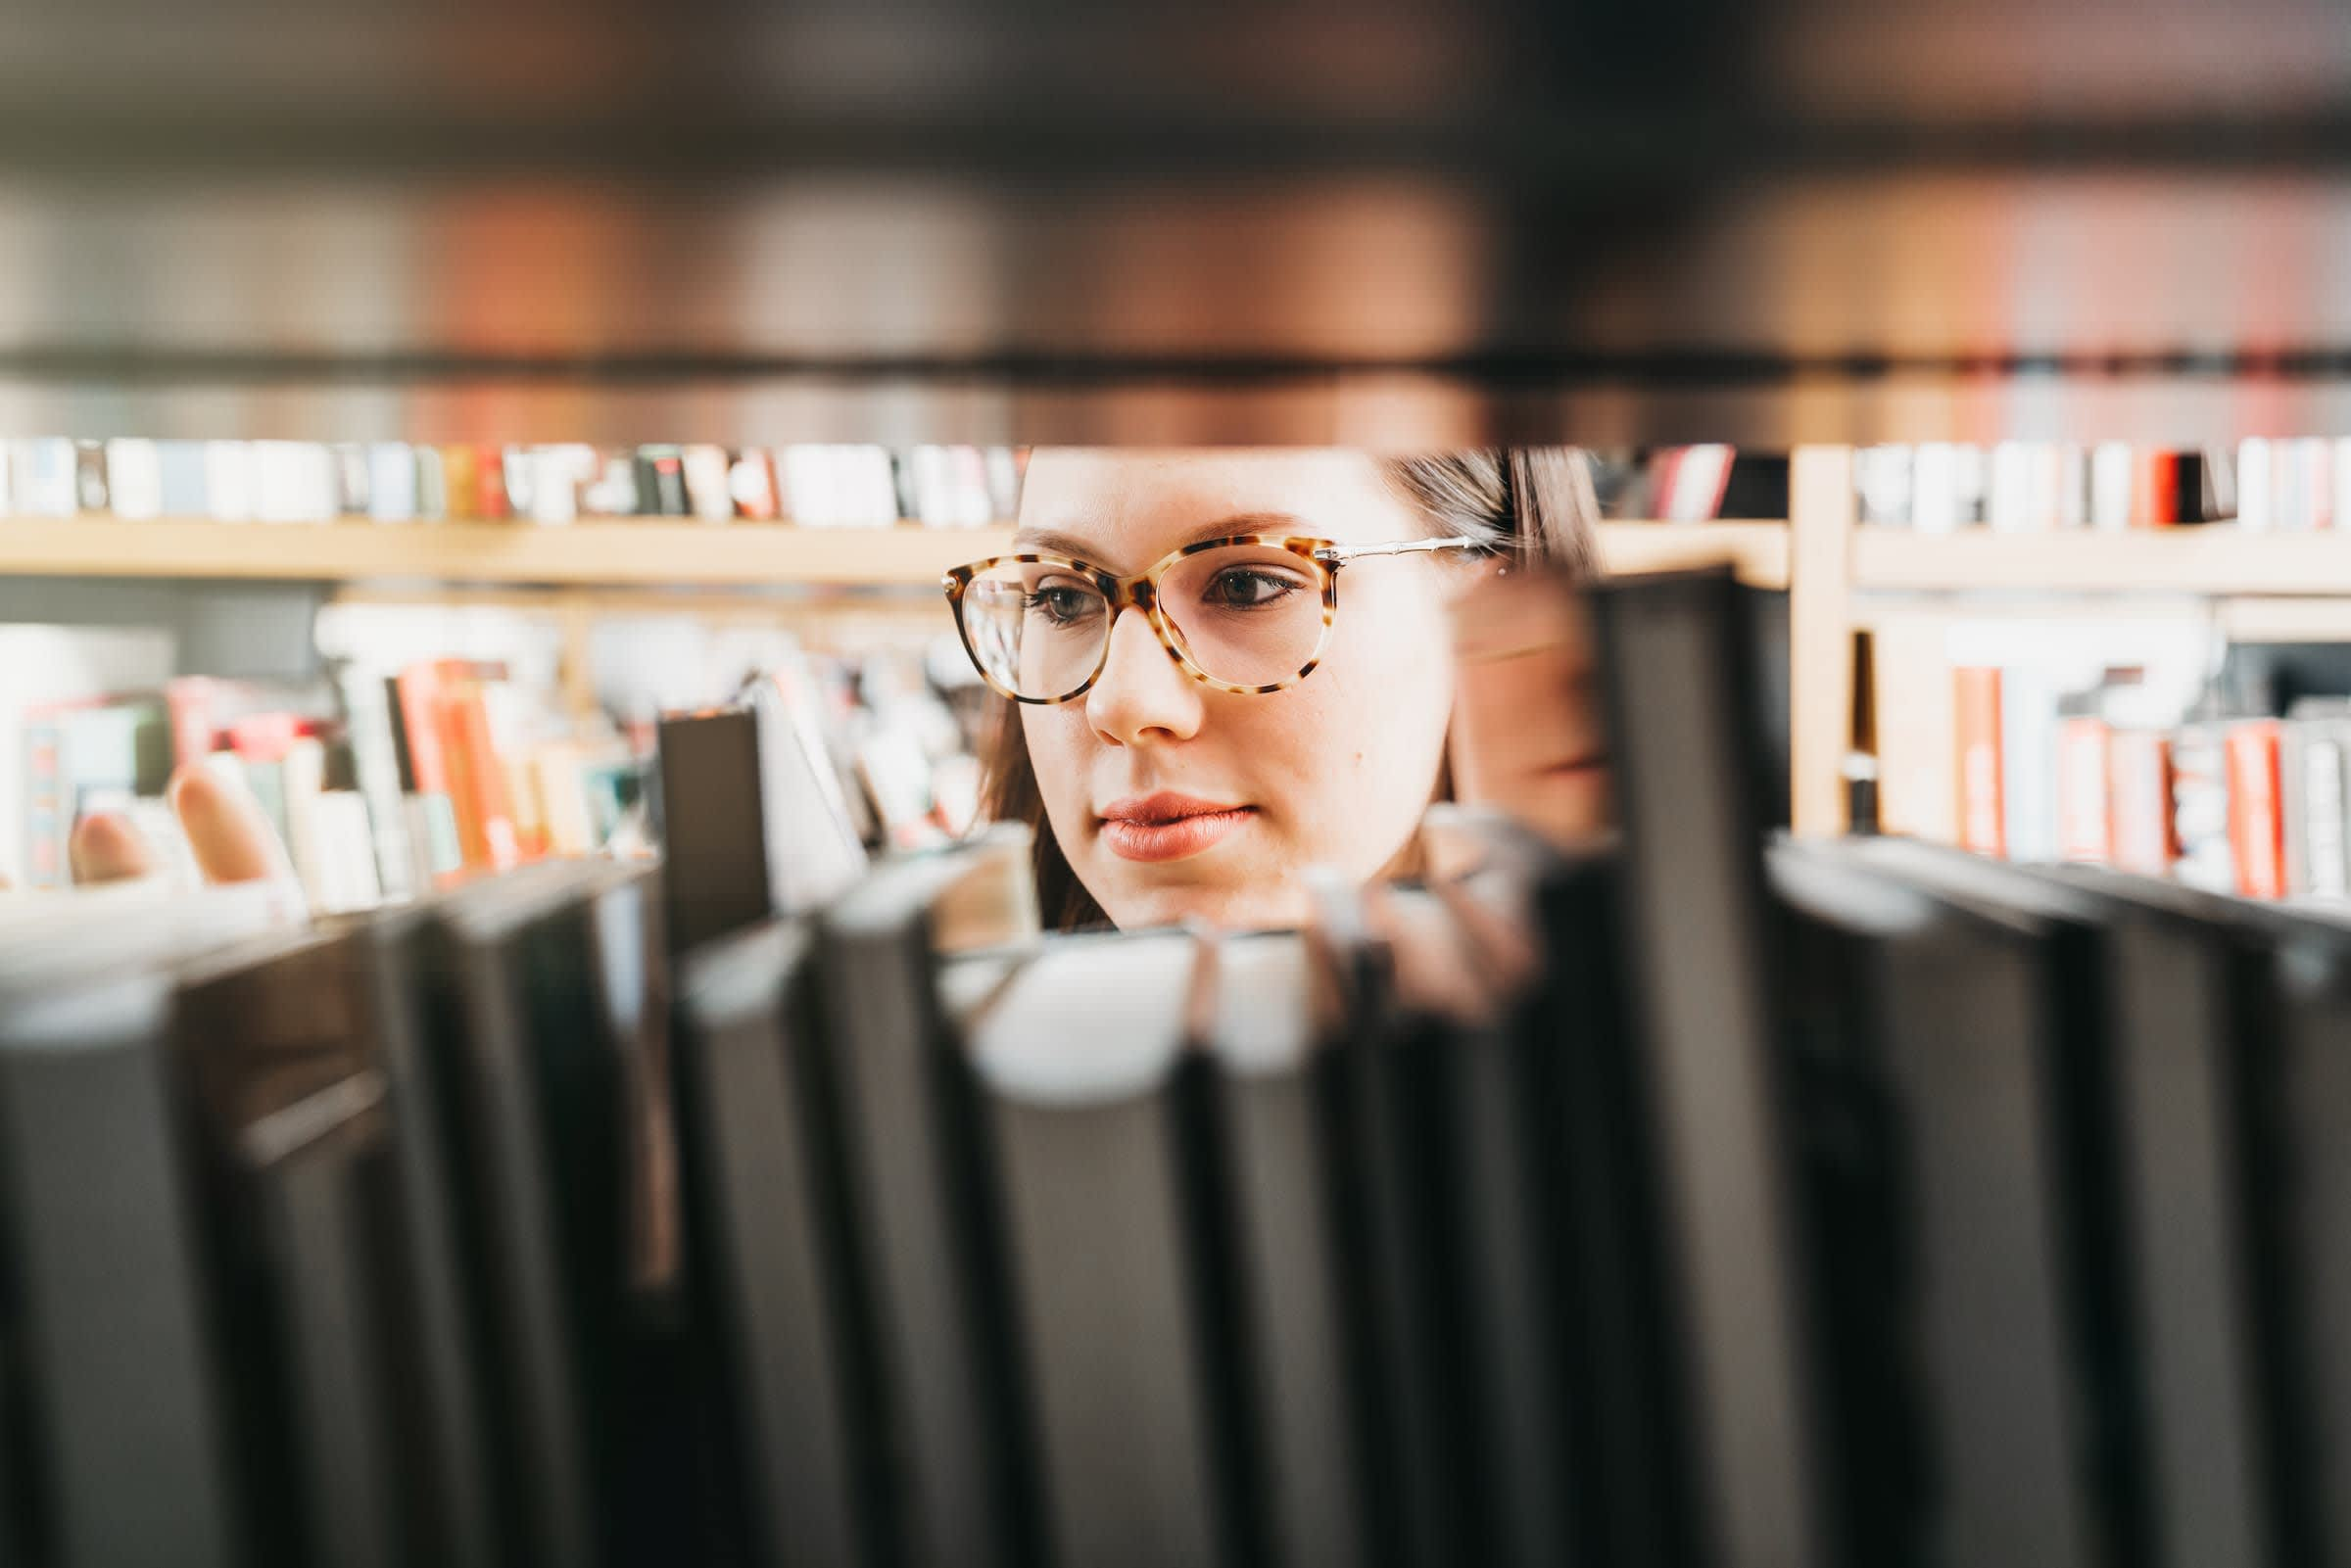 Image of student in library looking through a shelf of books